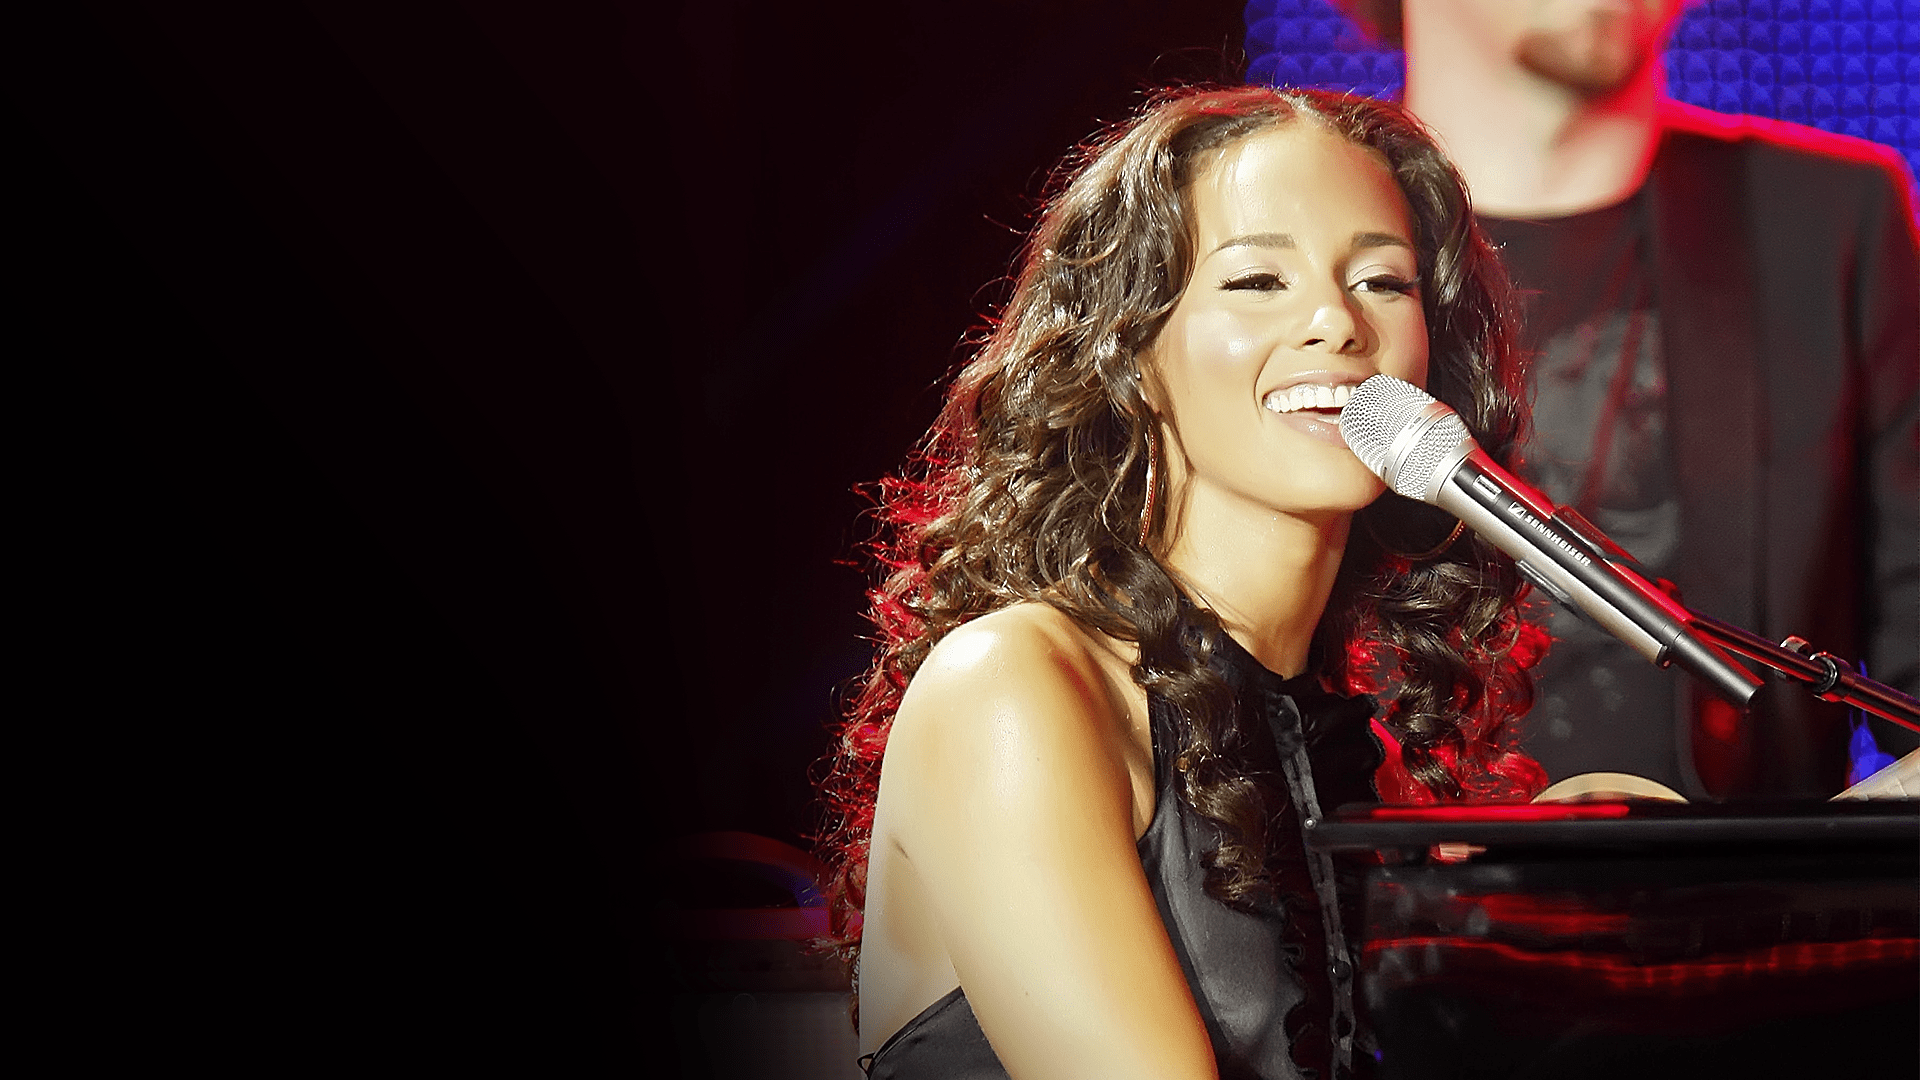 Alicia Keys Performs Live At The World Music Awards